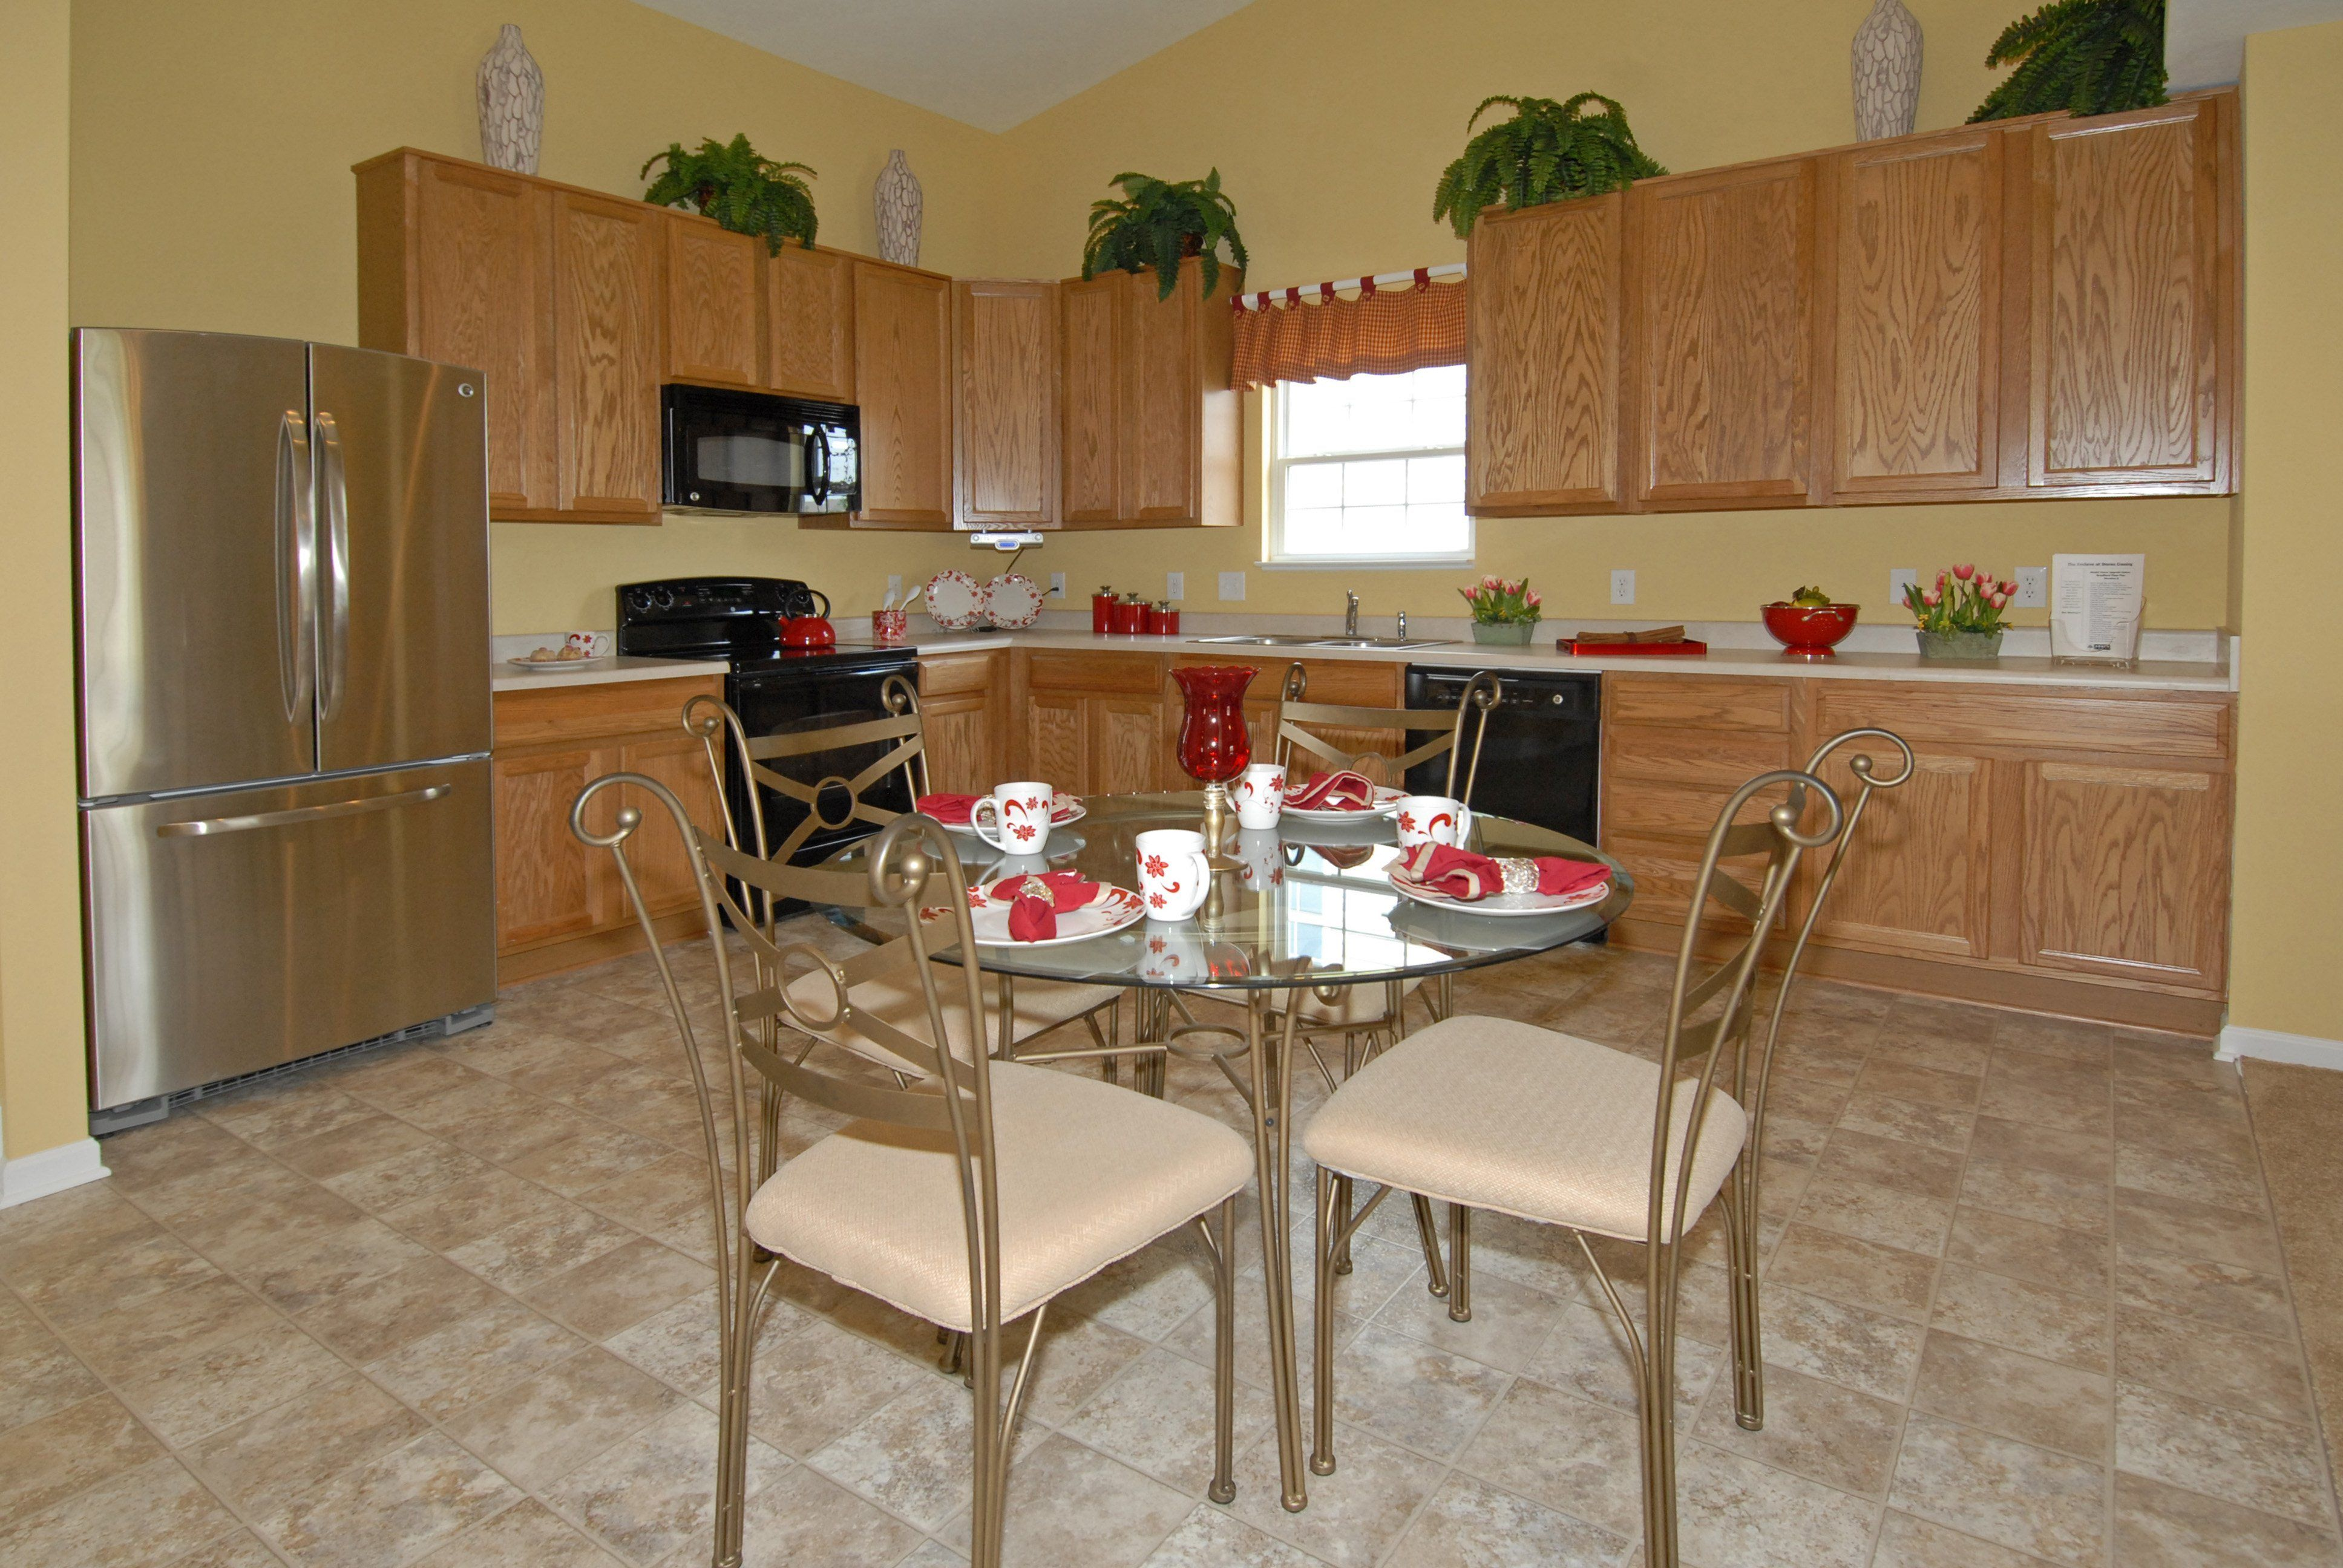 kitchen design bradford. The Bradford Model Kitchen In Enclave Community Greenwood  Magnificent Design Inspiration On Avon